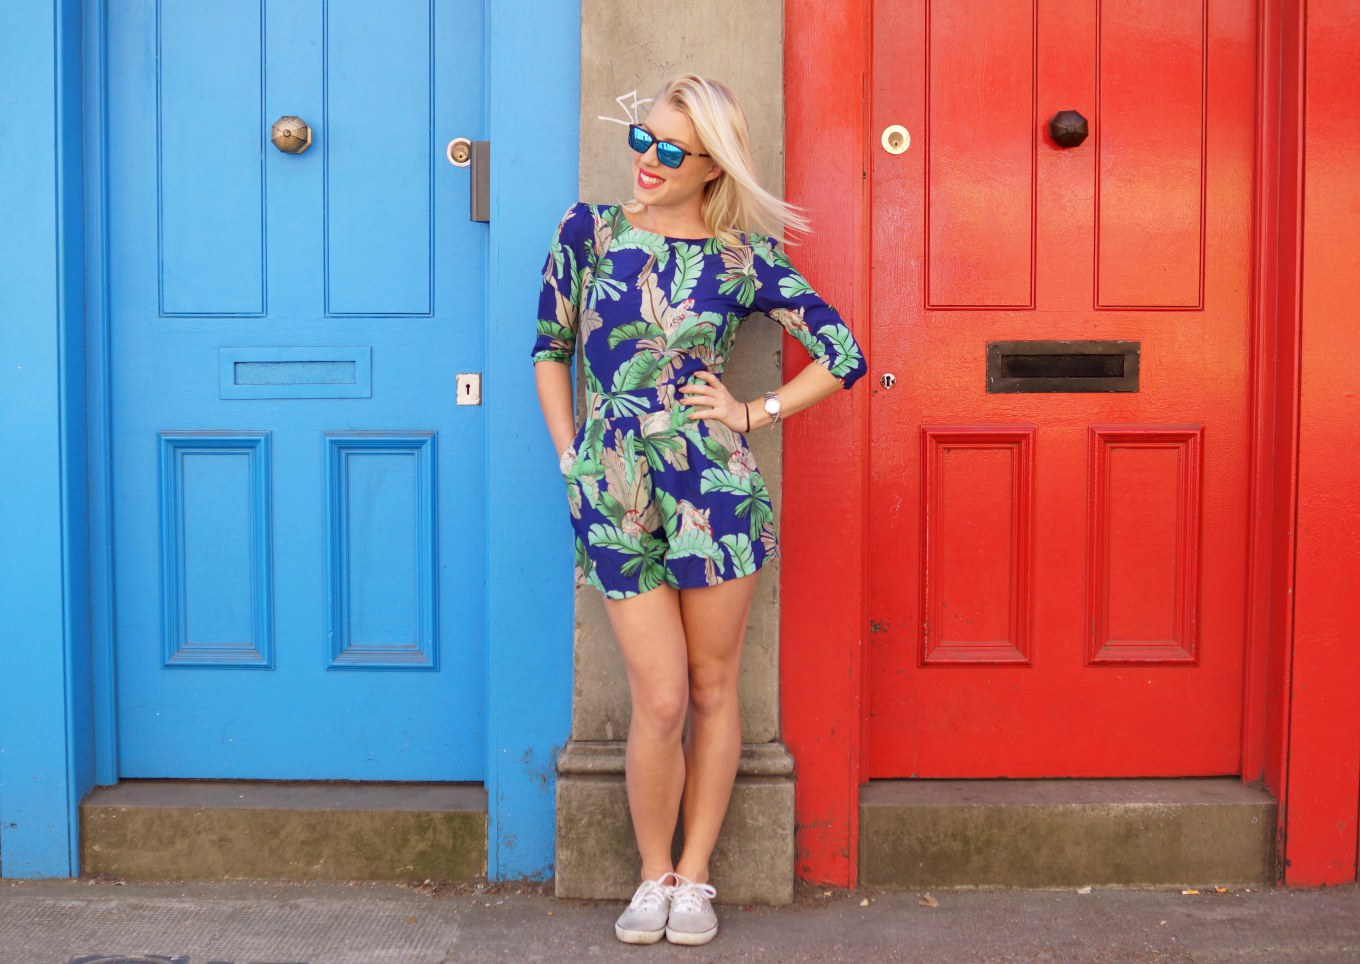 Photo of Louise between a blue and red door wearing a cute thrifted romper with floral pattern